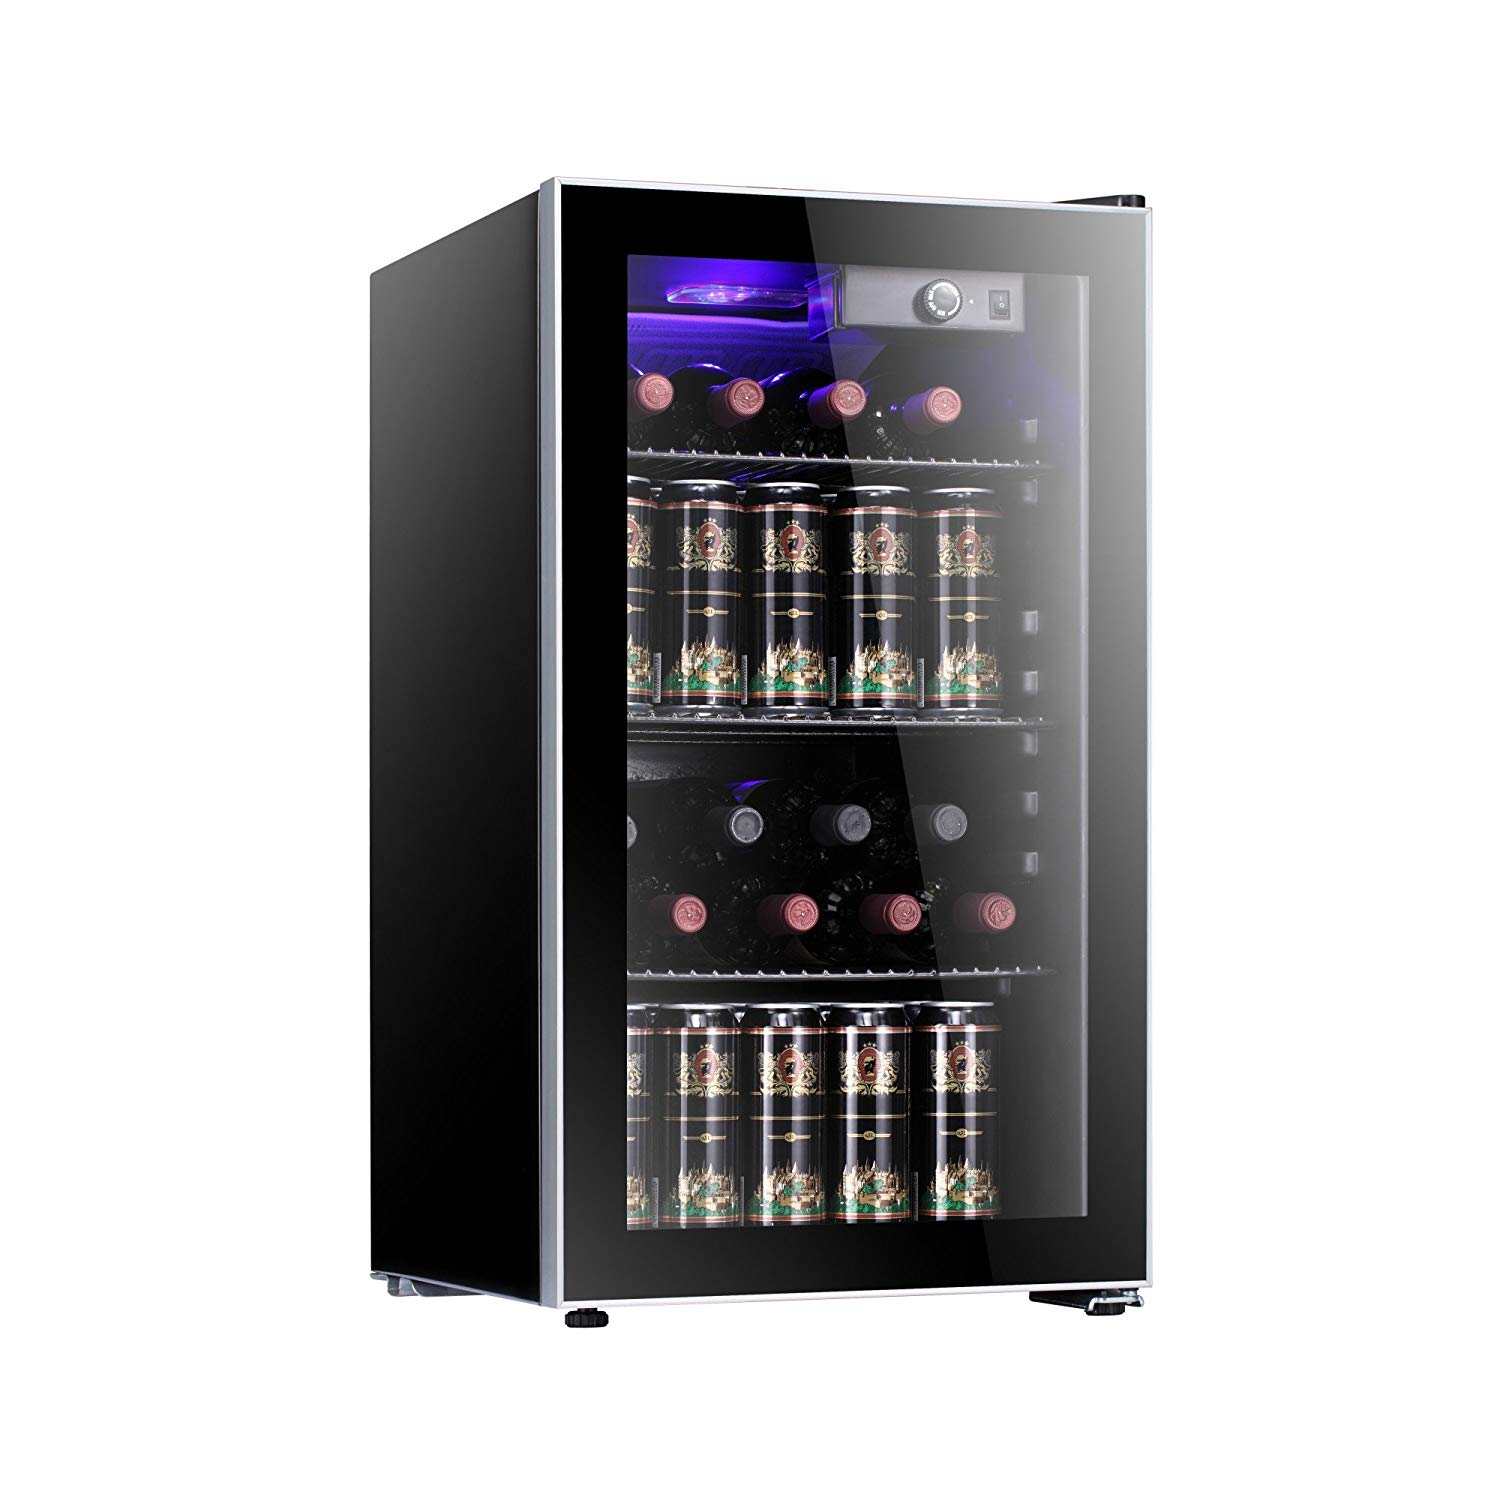 Antarctic Star 26 Bottle Wine Cooler